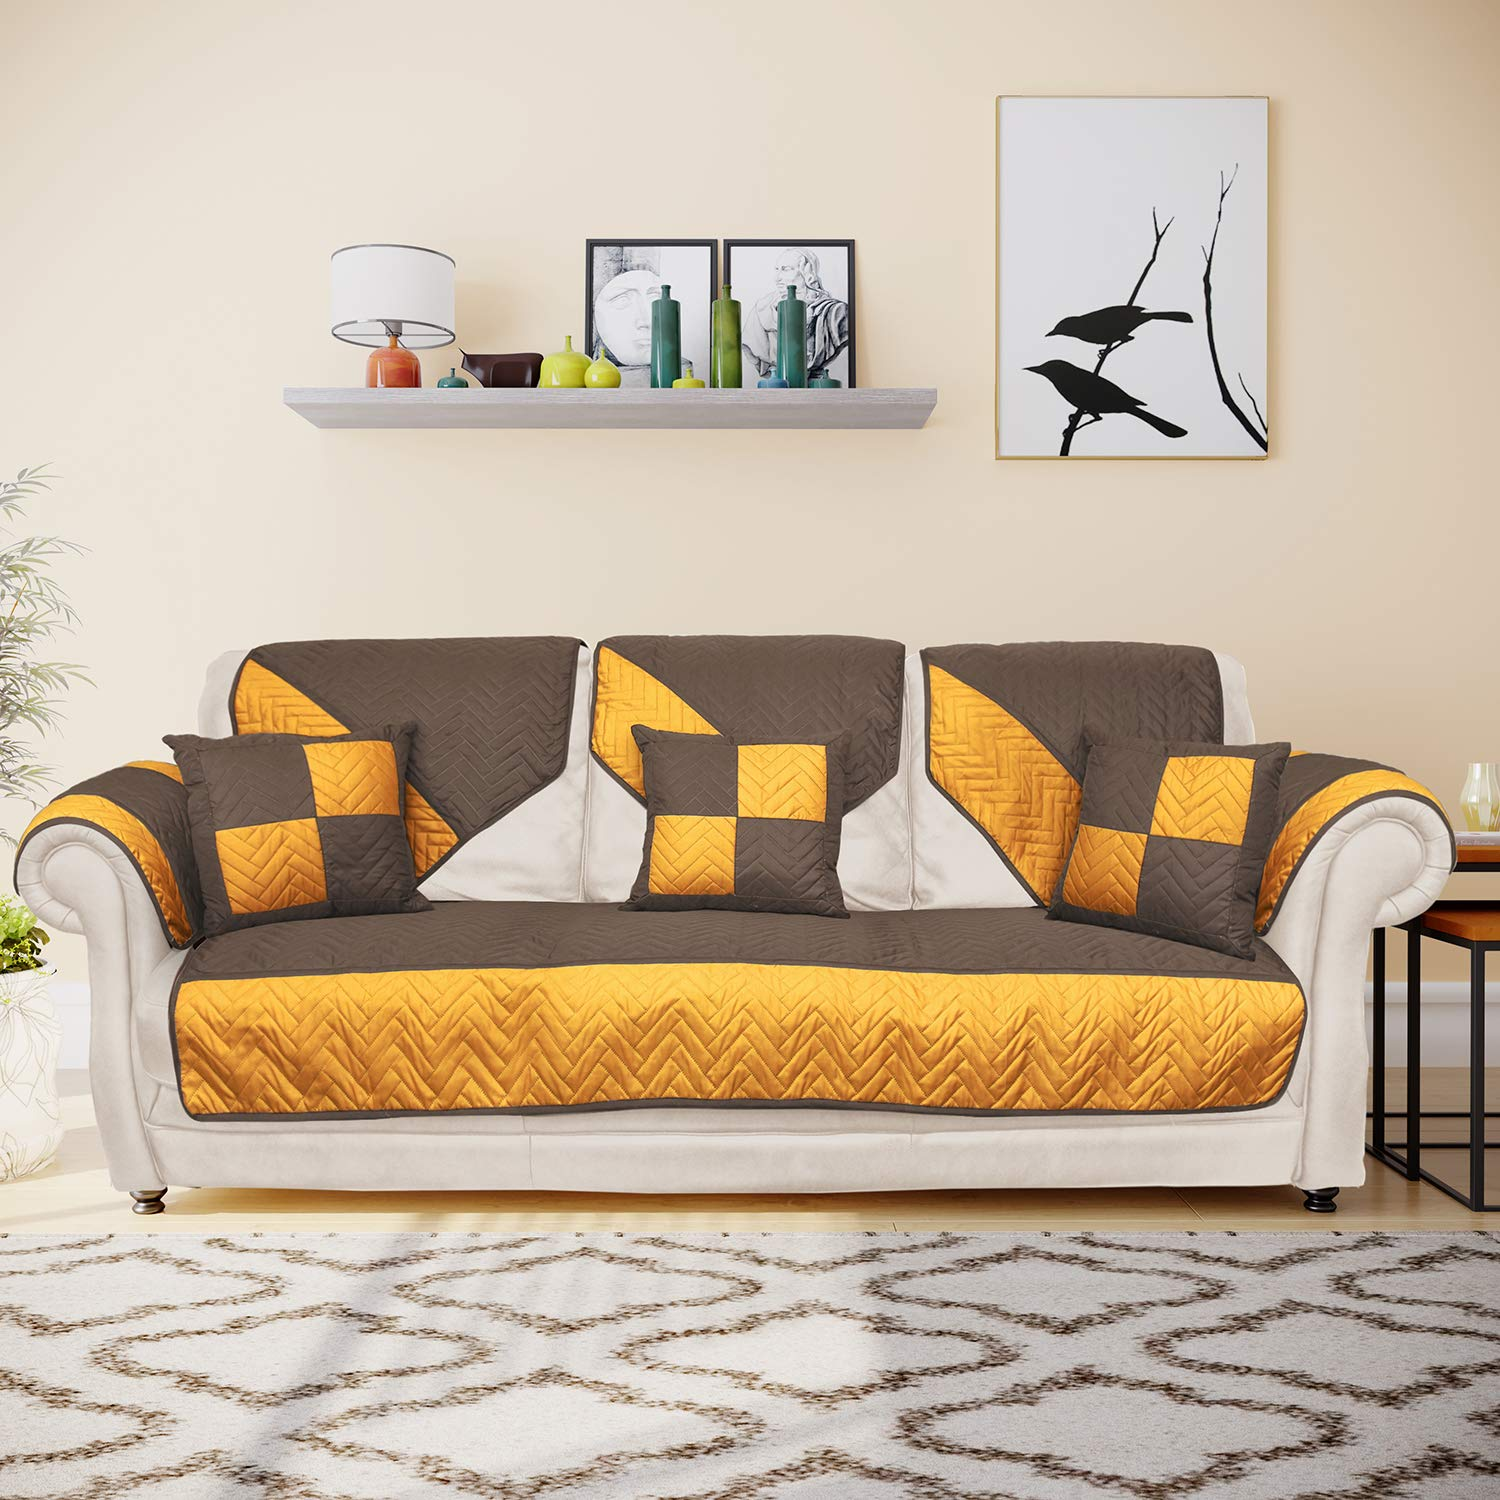 Full Size of Patchwork Sofa Dfs Bed Slipcovers Covers Uk Fabric Corner Material Ebay Cover Informa Couch Design Grey Where To Buy Ireland The Range Gumtree Doll Home By Sofa Sofa Patchwork